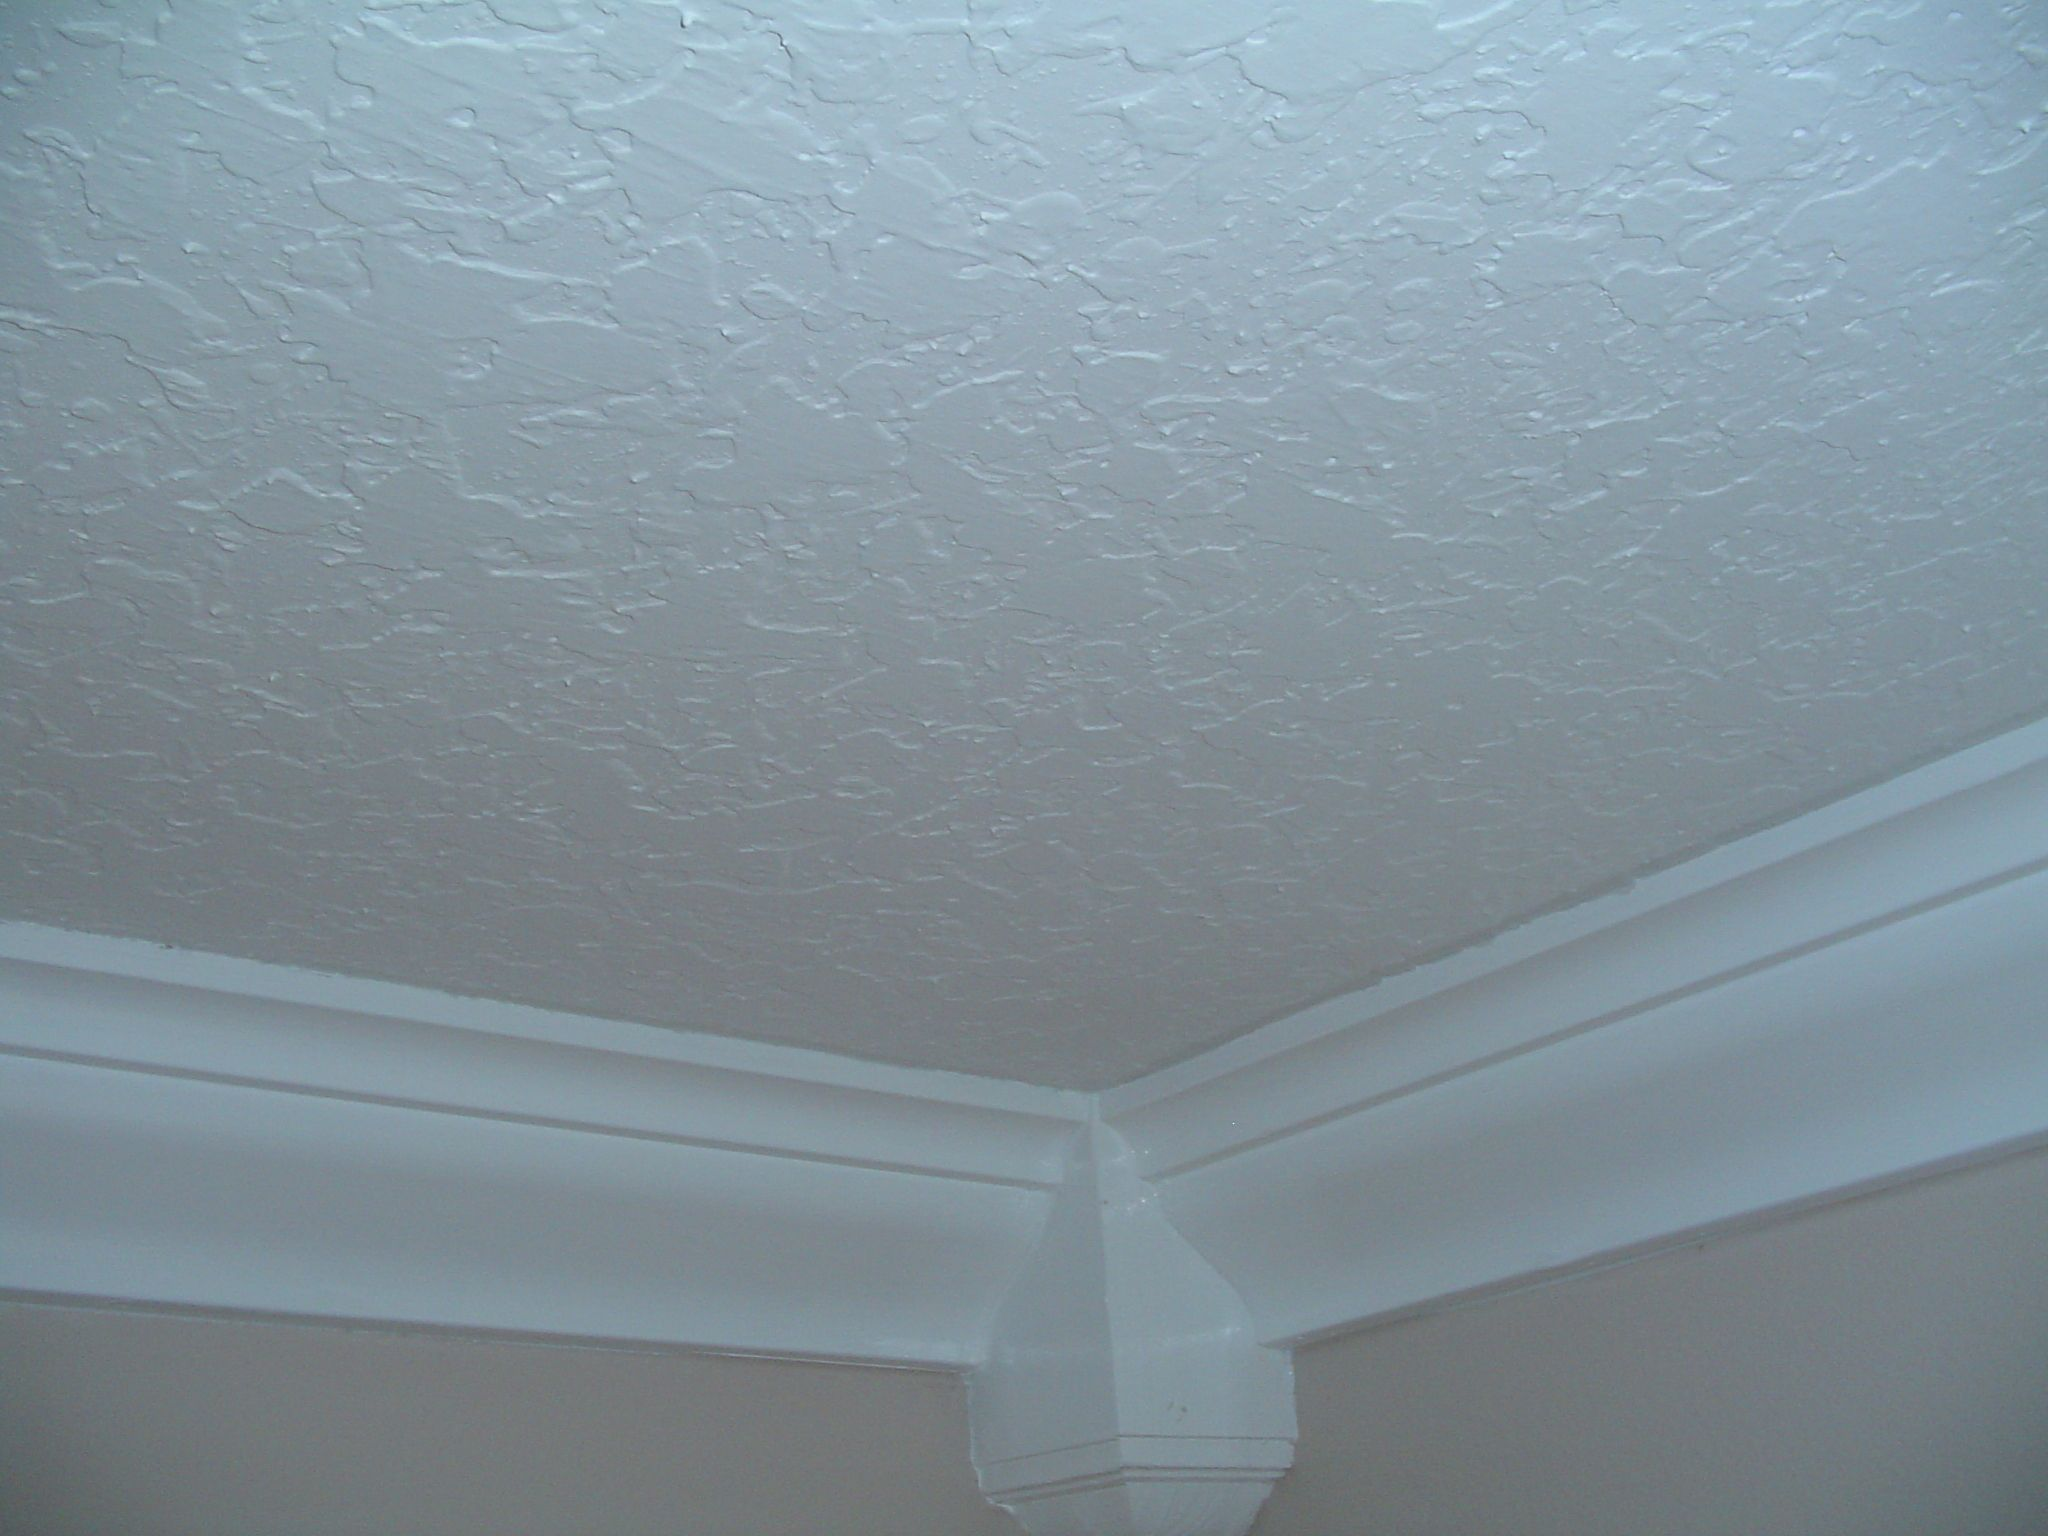 Knockdown Ceiling Texture Spanish Lace Or Mediterranean Remove Popcorn